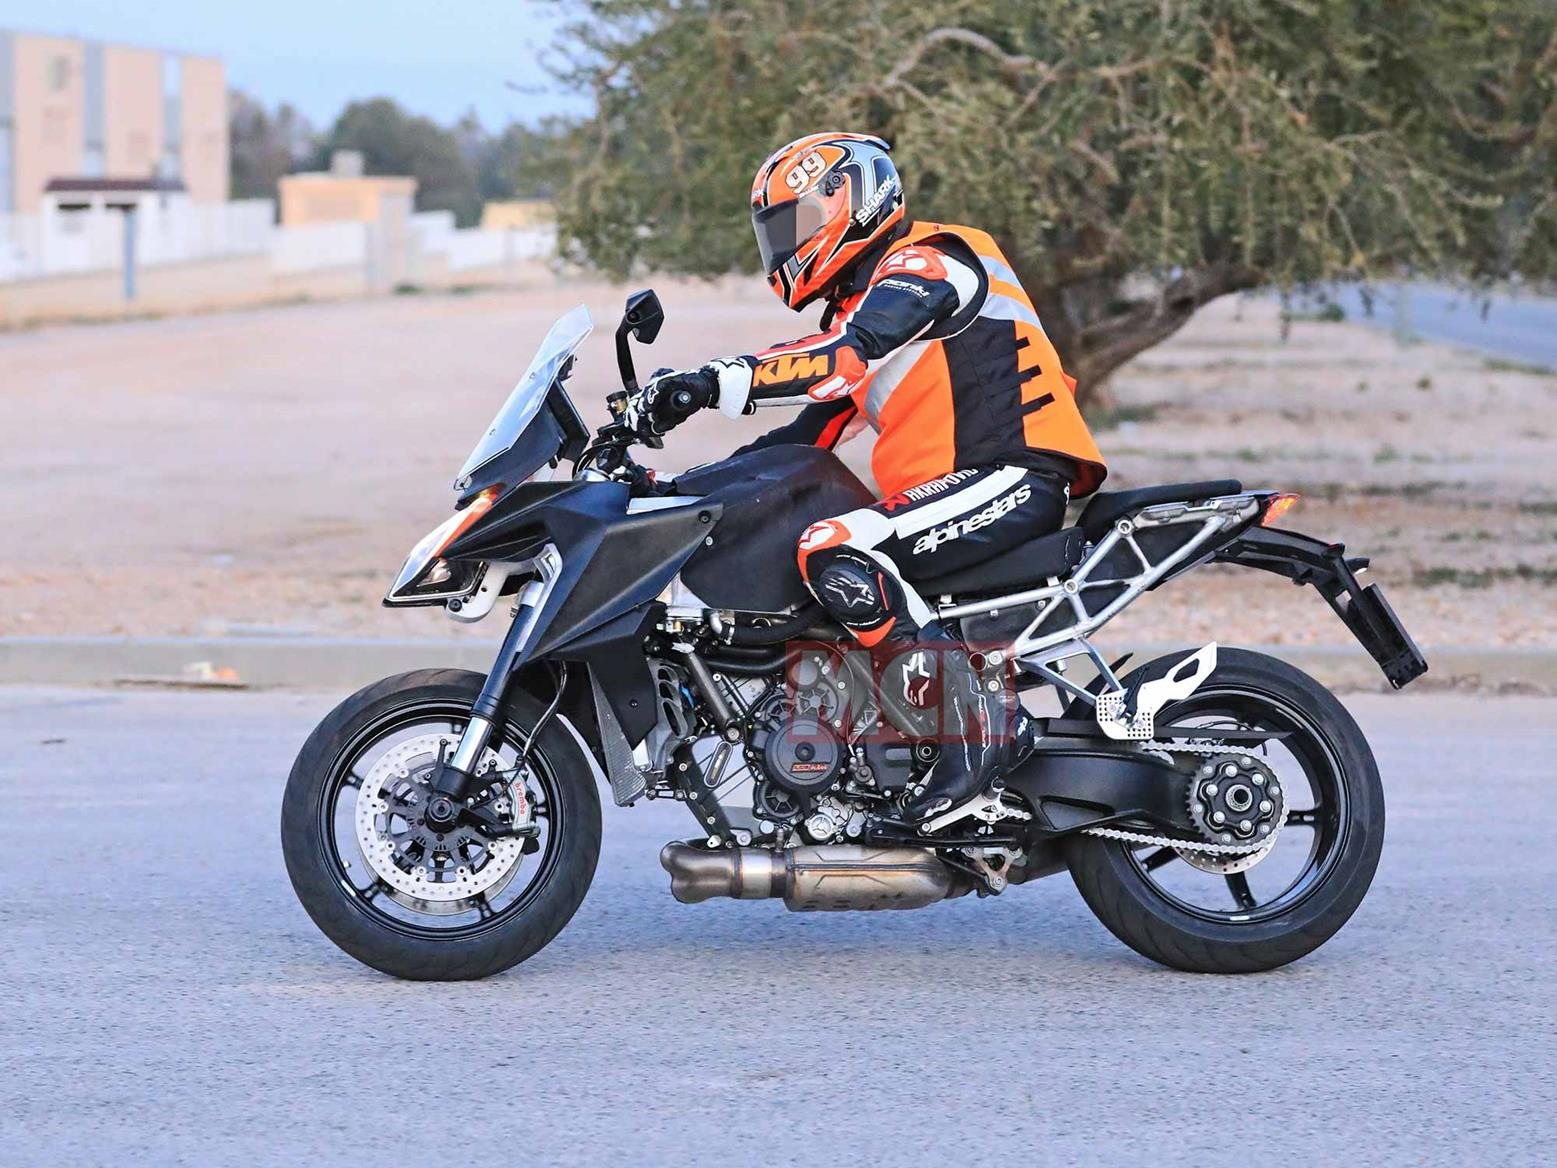 Yamaha MT-07 for hire from RoadTrip